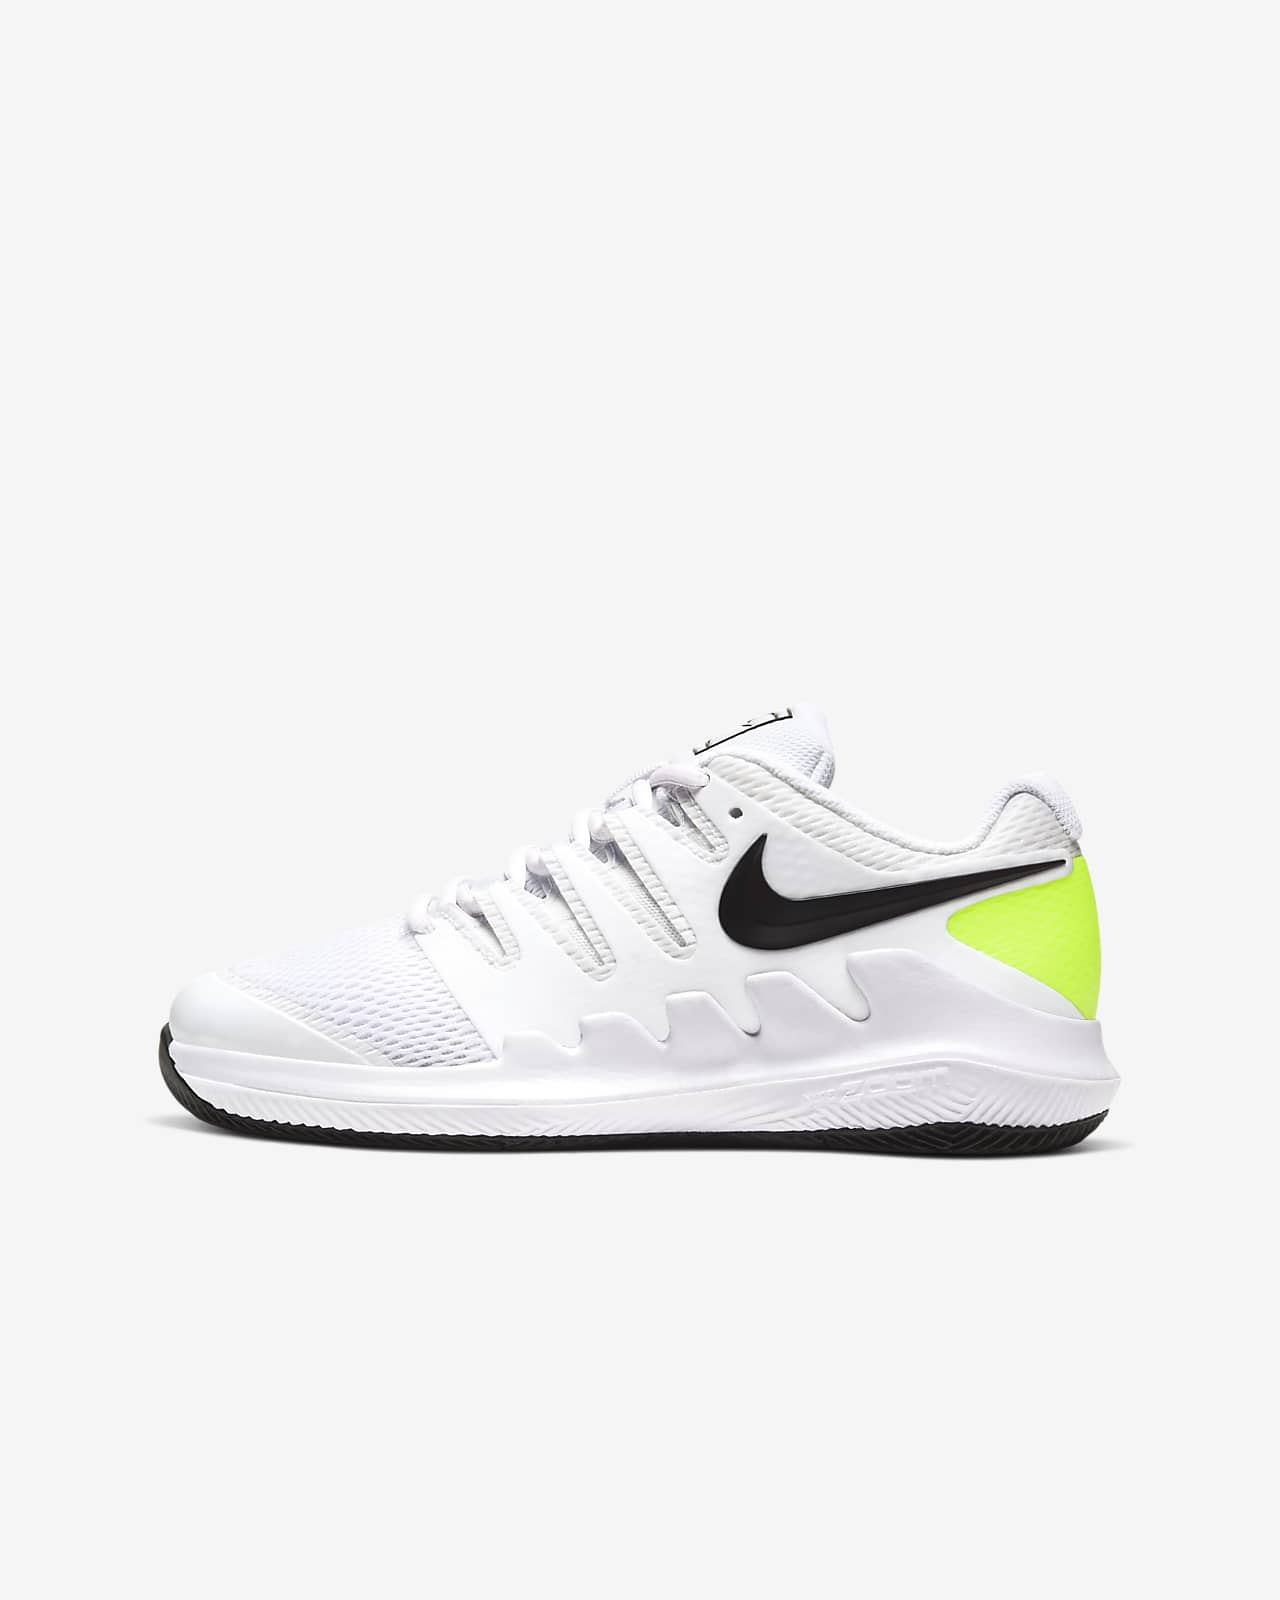 NikeCourt Jr. Vapor X Younger/Older Kids' Tennis Shoe